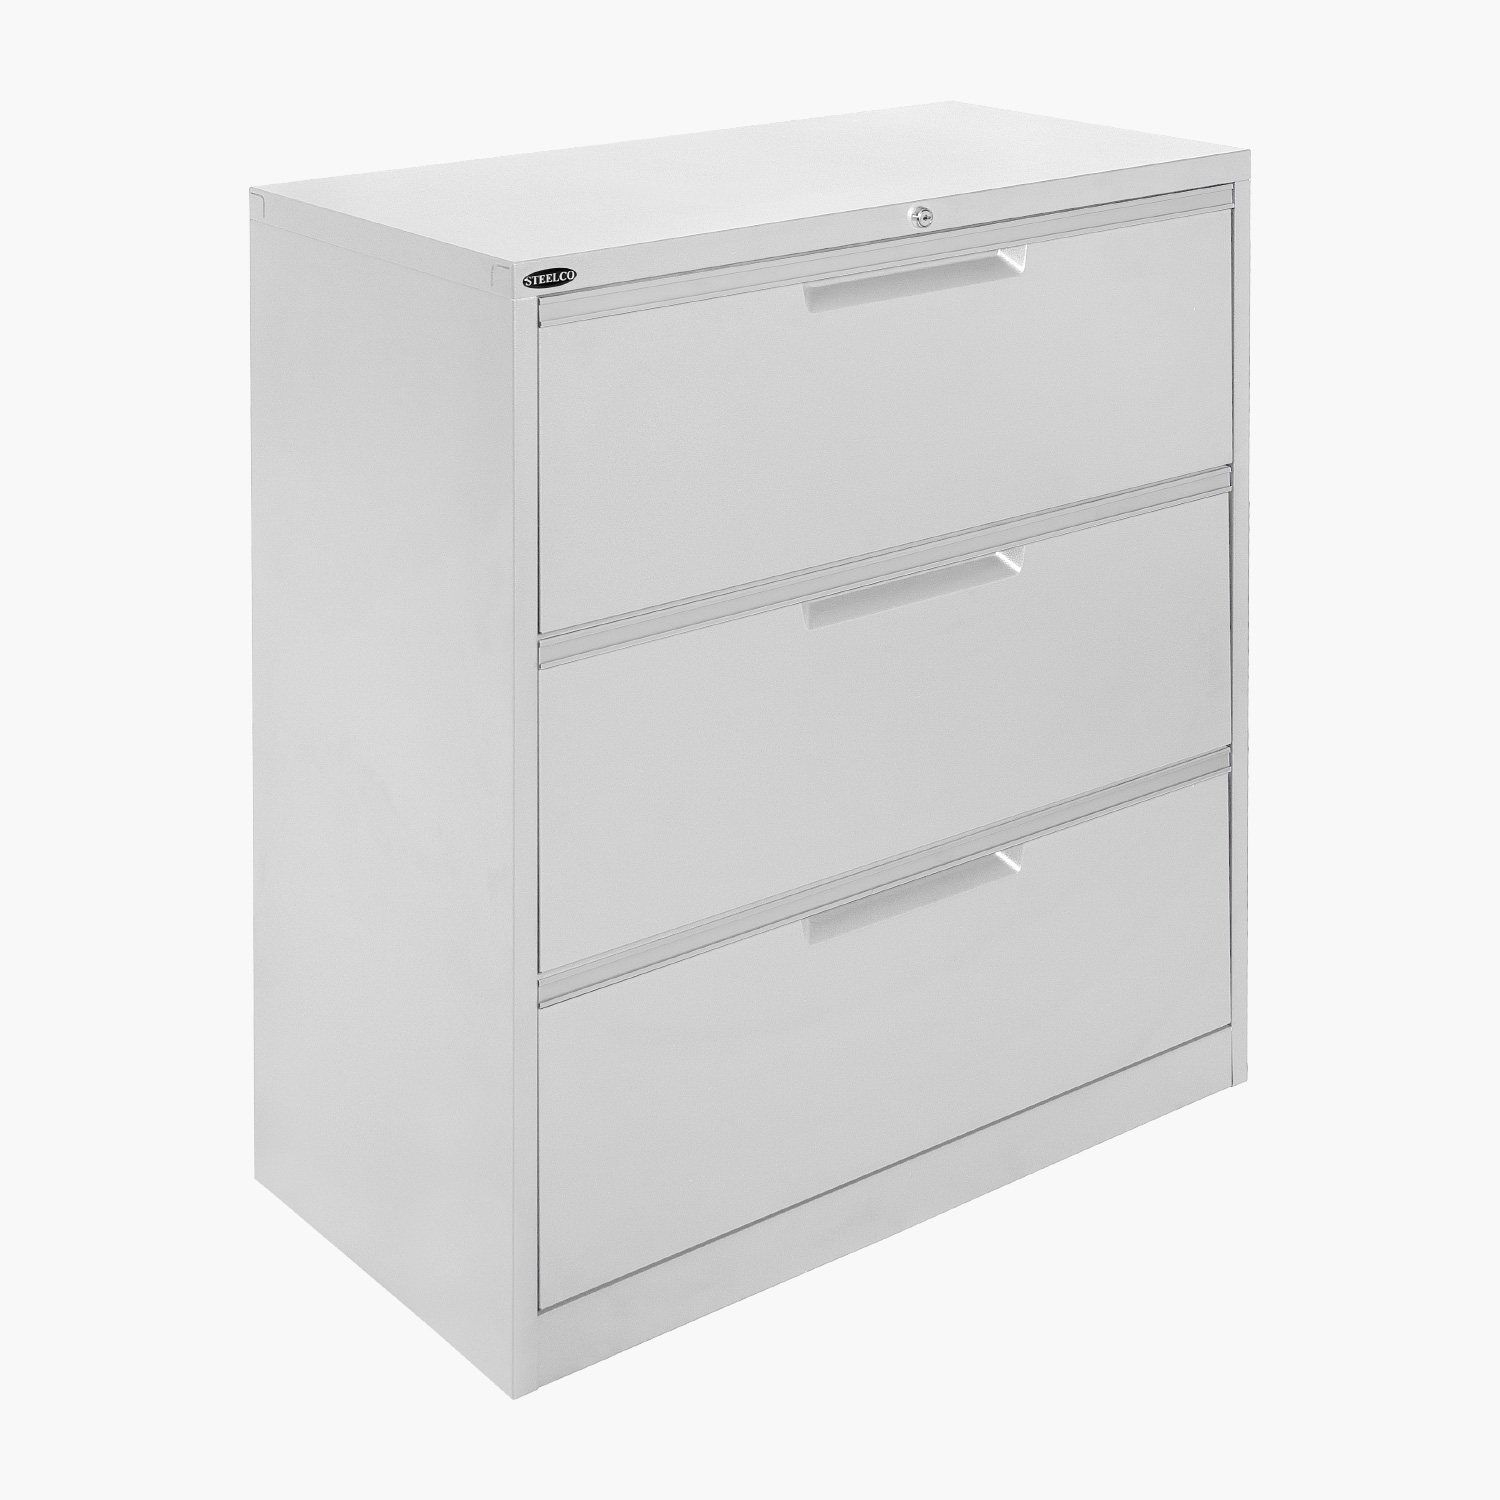 hon replacement files hanging inserts legal lateral vertical drawers filing cabinet storage rails hang wooden bars drawer secure furniture divider cabinets folder parts file for